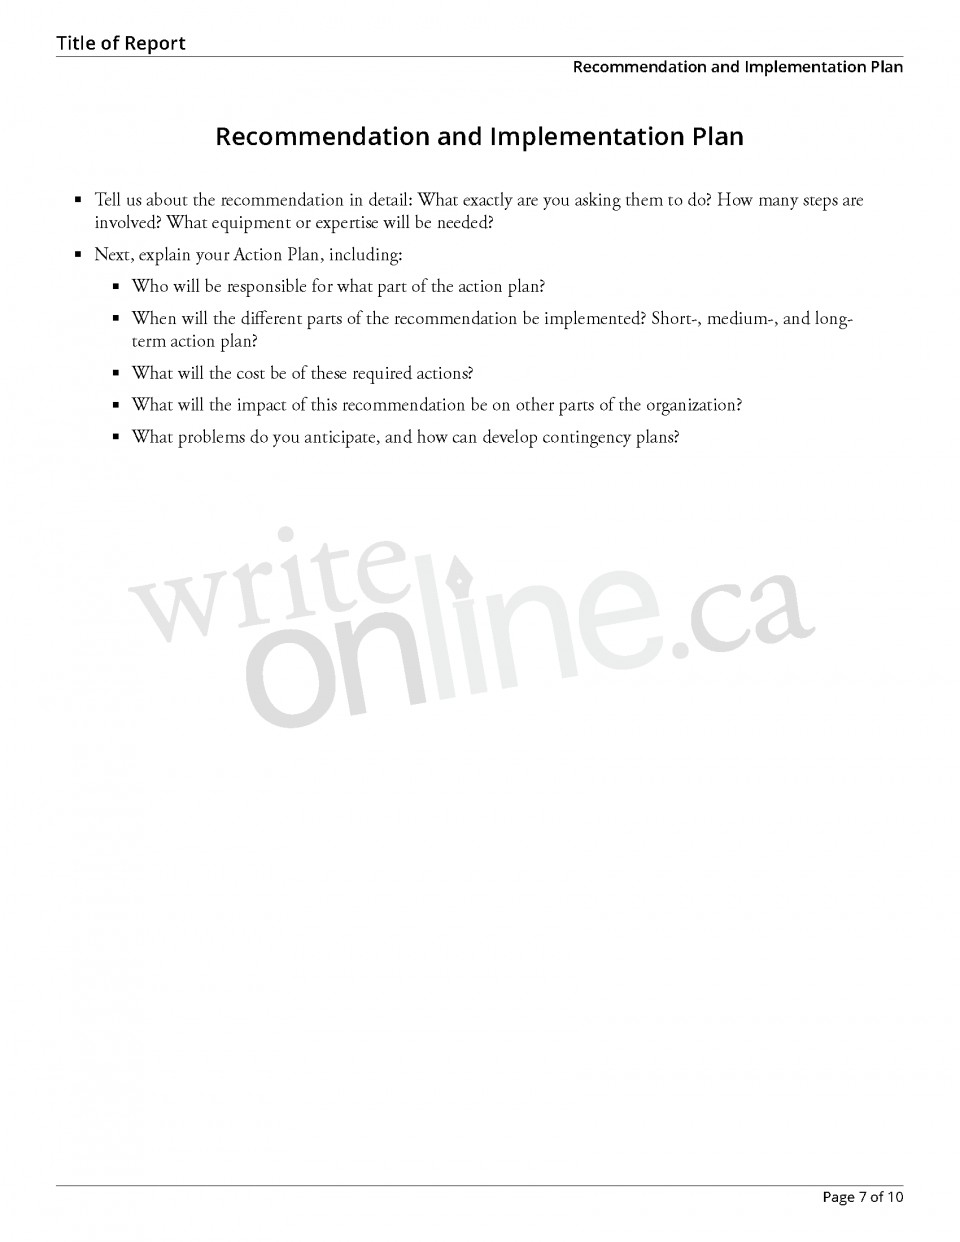 005 Casestudy Sample Page 07 Research Paper Parts Of High Shocking A School For Students 960